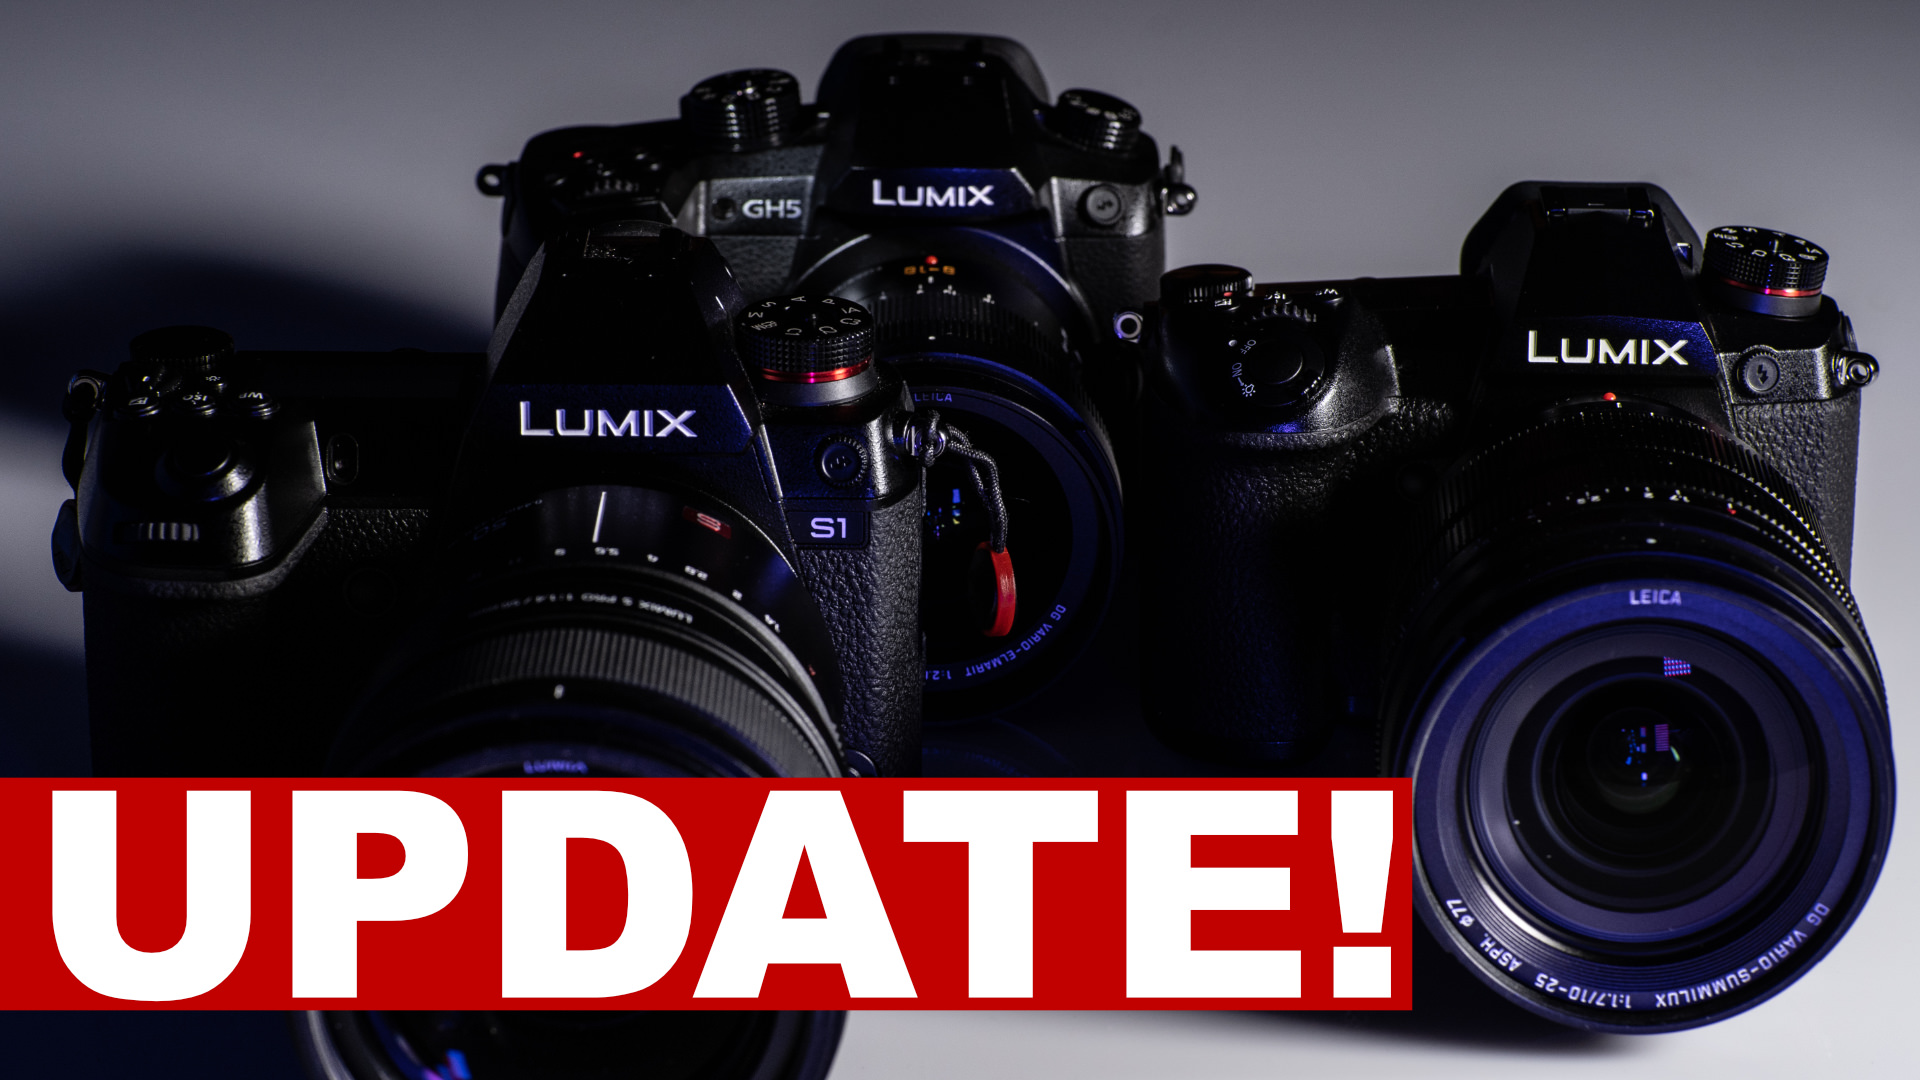 How to Firmware Update LUMIX G9 (and V-Log L), GH5, GH5S, S1, S1R